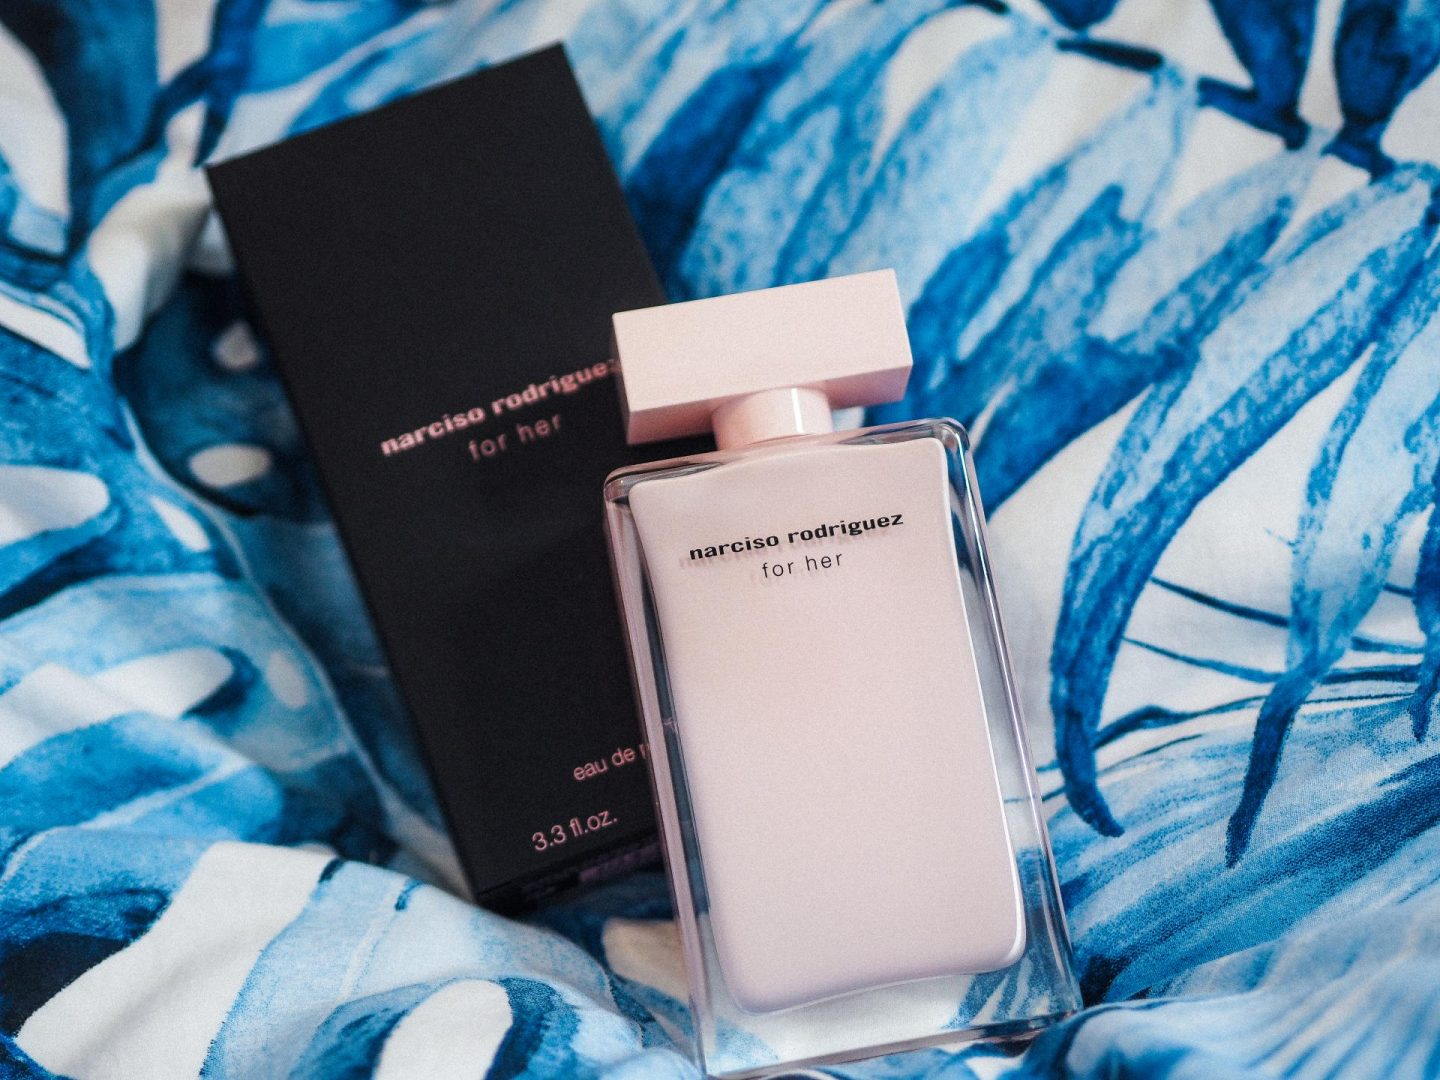 Narciso Rodriguez For Her Eau De Parfum - Rachel Nicole UK Blogger